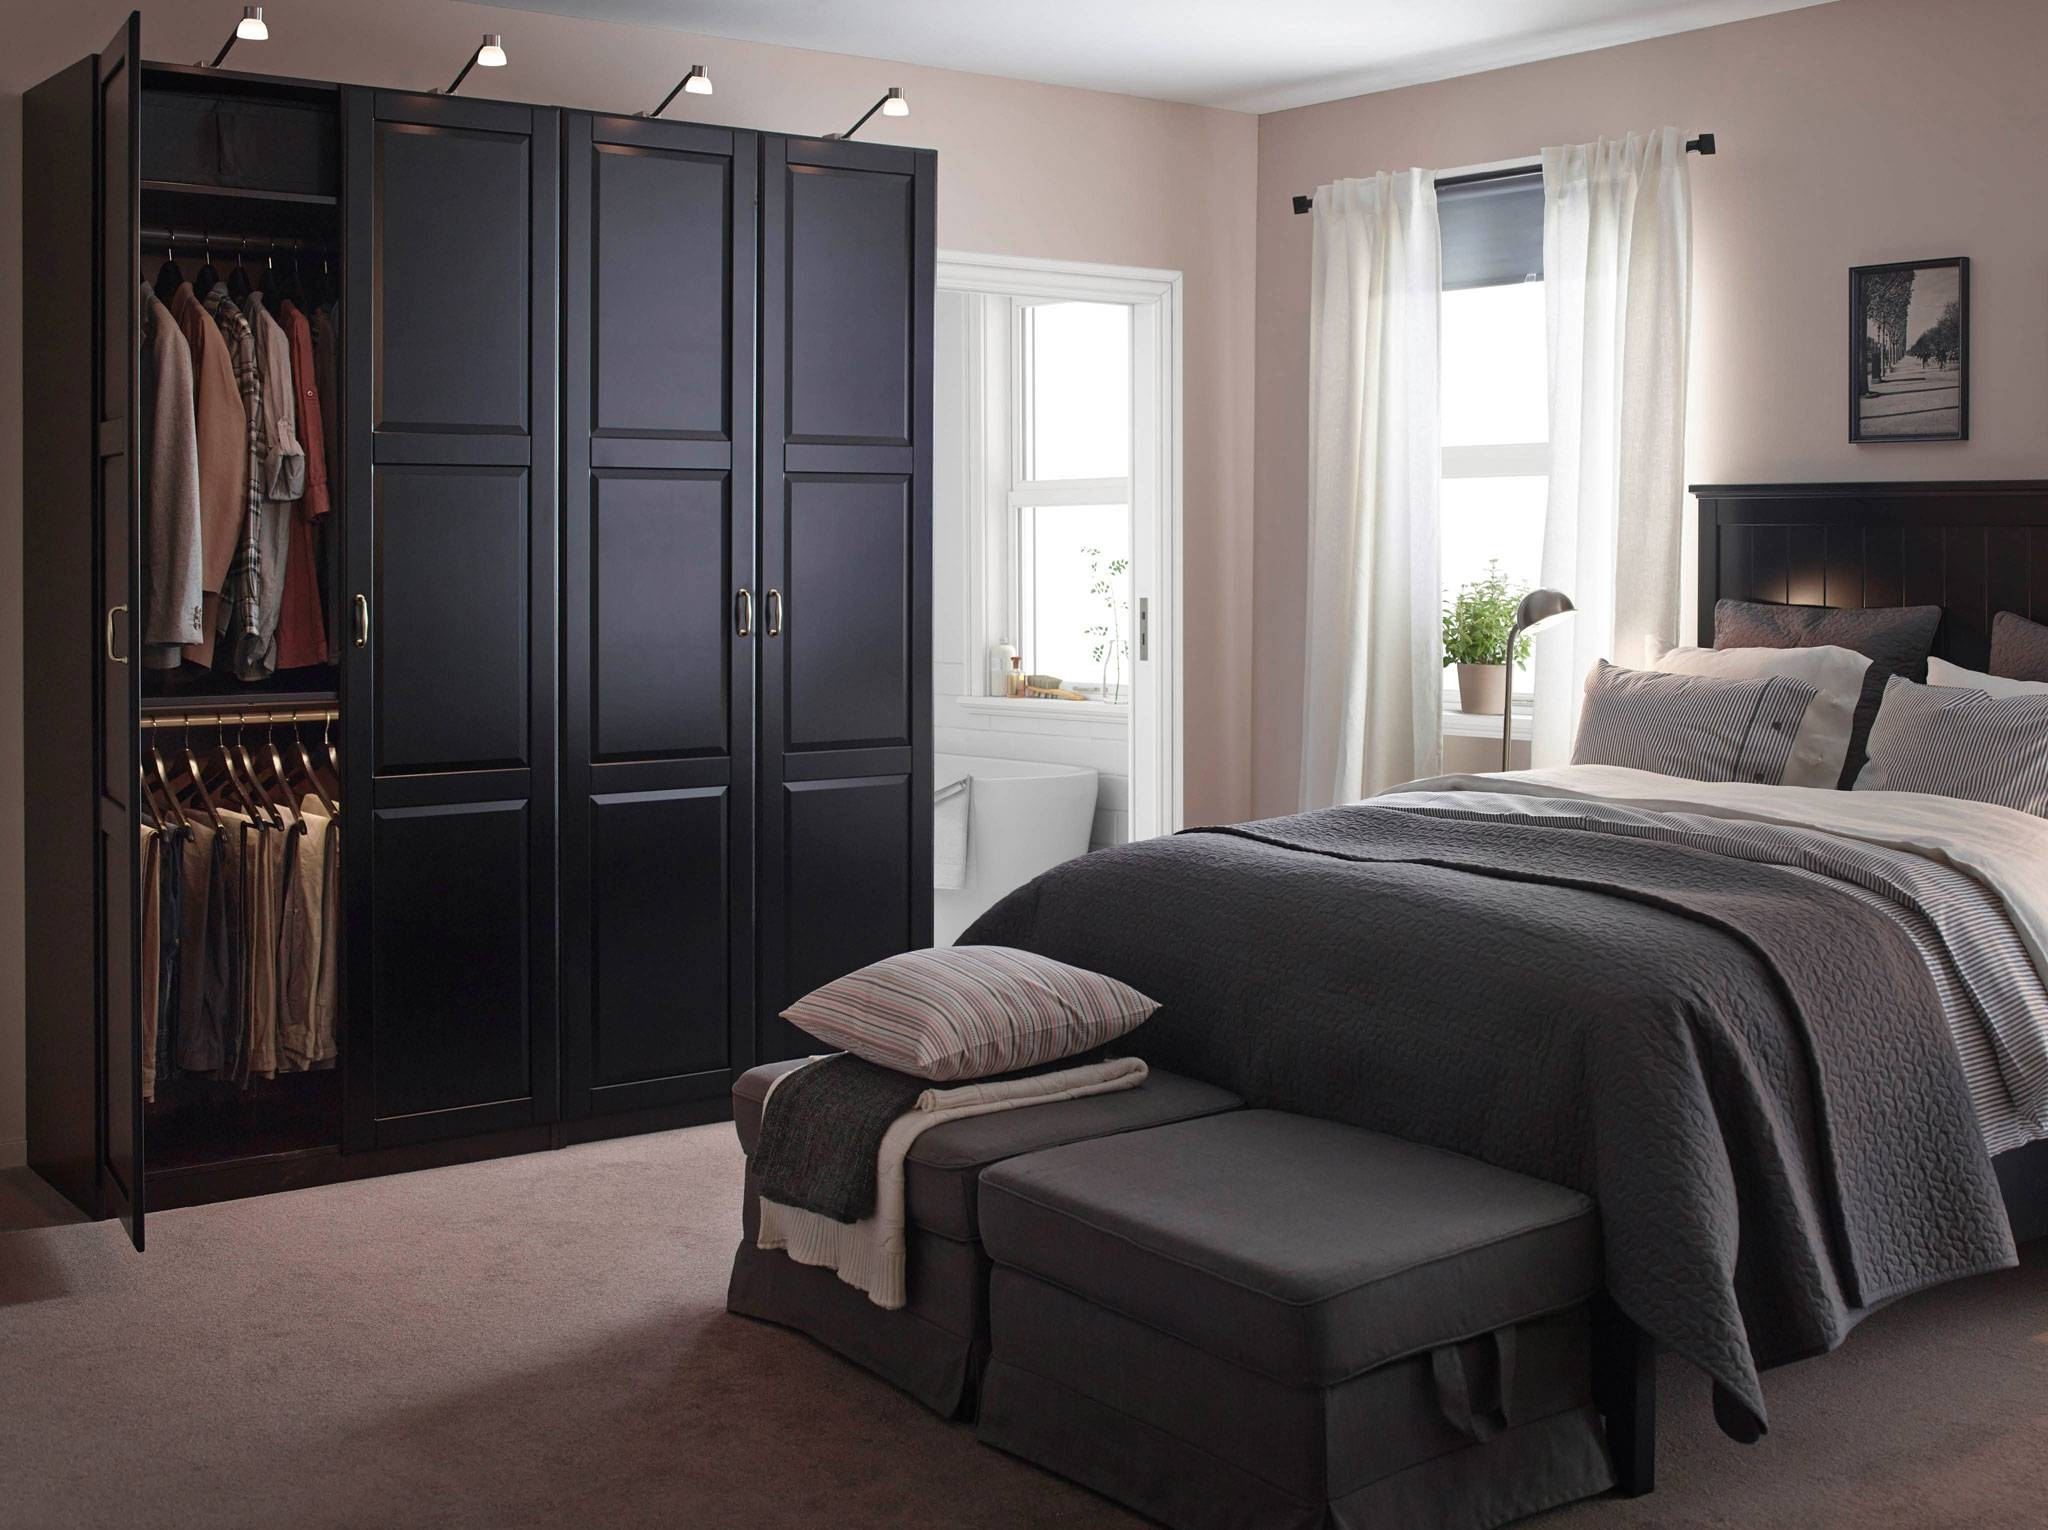 Bedroom Furniture & Ideas | Ikea regarding Dark Wood Wardrobe With Drawers (Image 4 of 30)